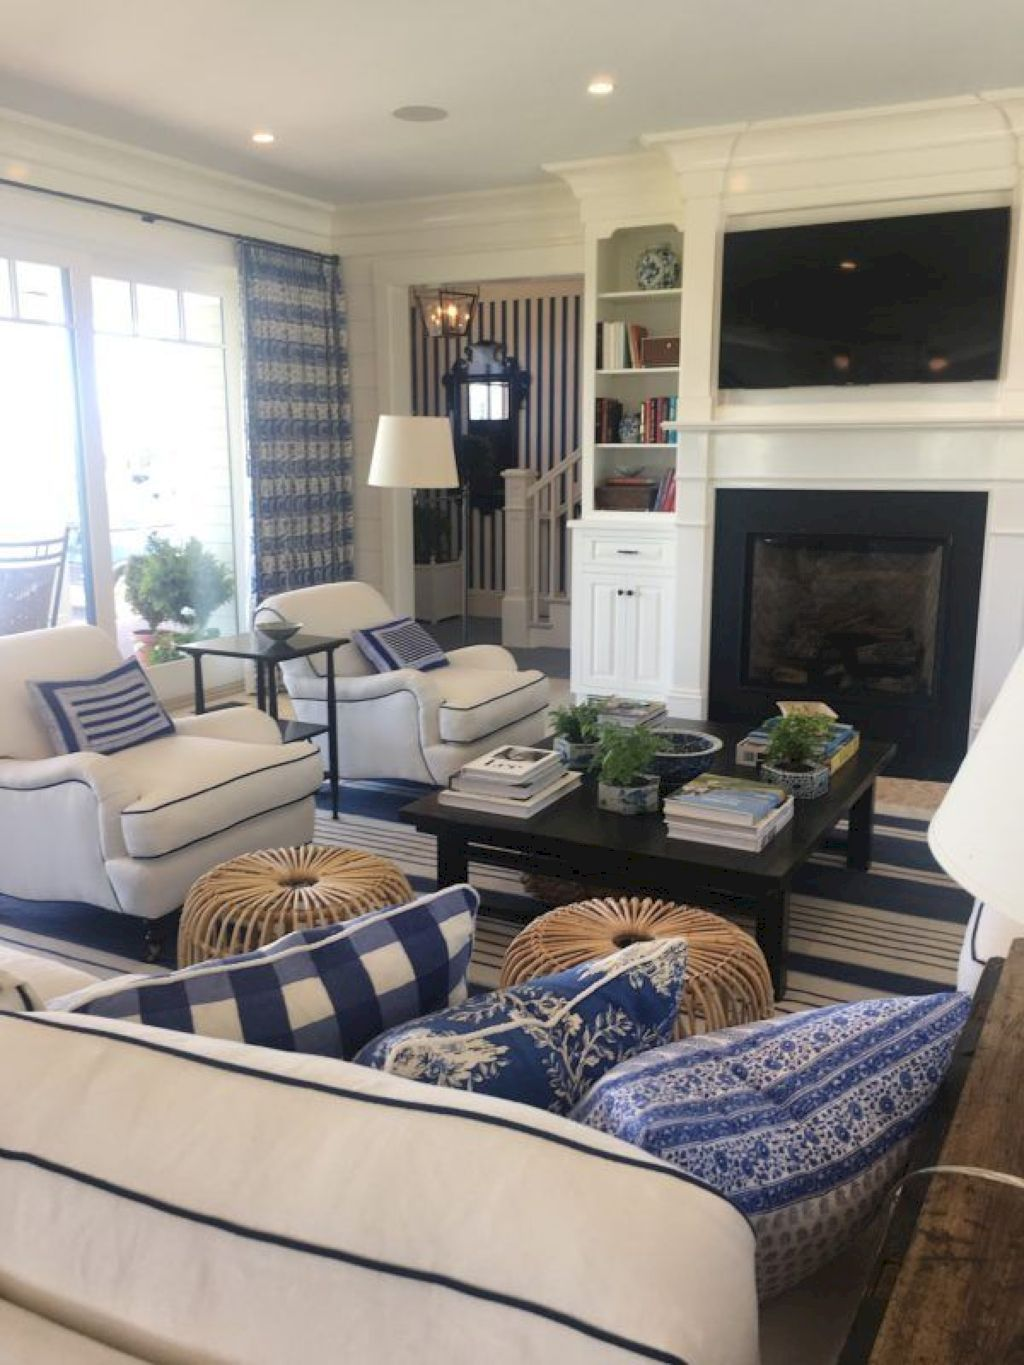 Cool 45 Best Coastal Living Room Decor Ideas  Https://bellezaroom.com/2018/01/08/45 Best Coastal Living Room Decor Ideas/